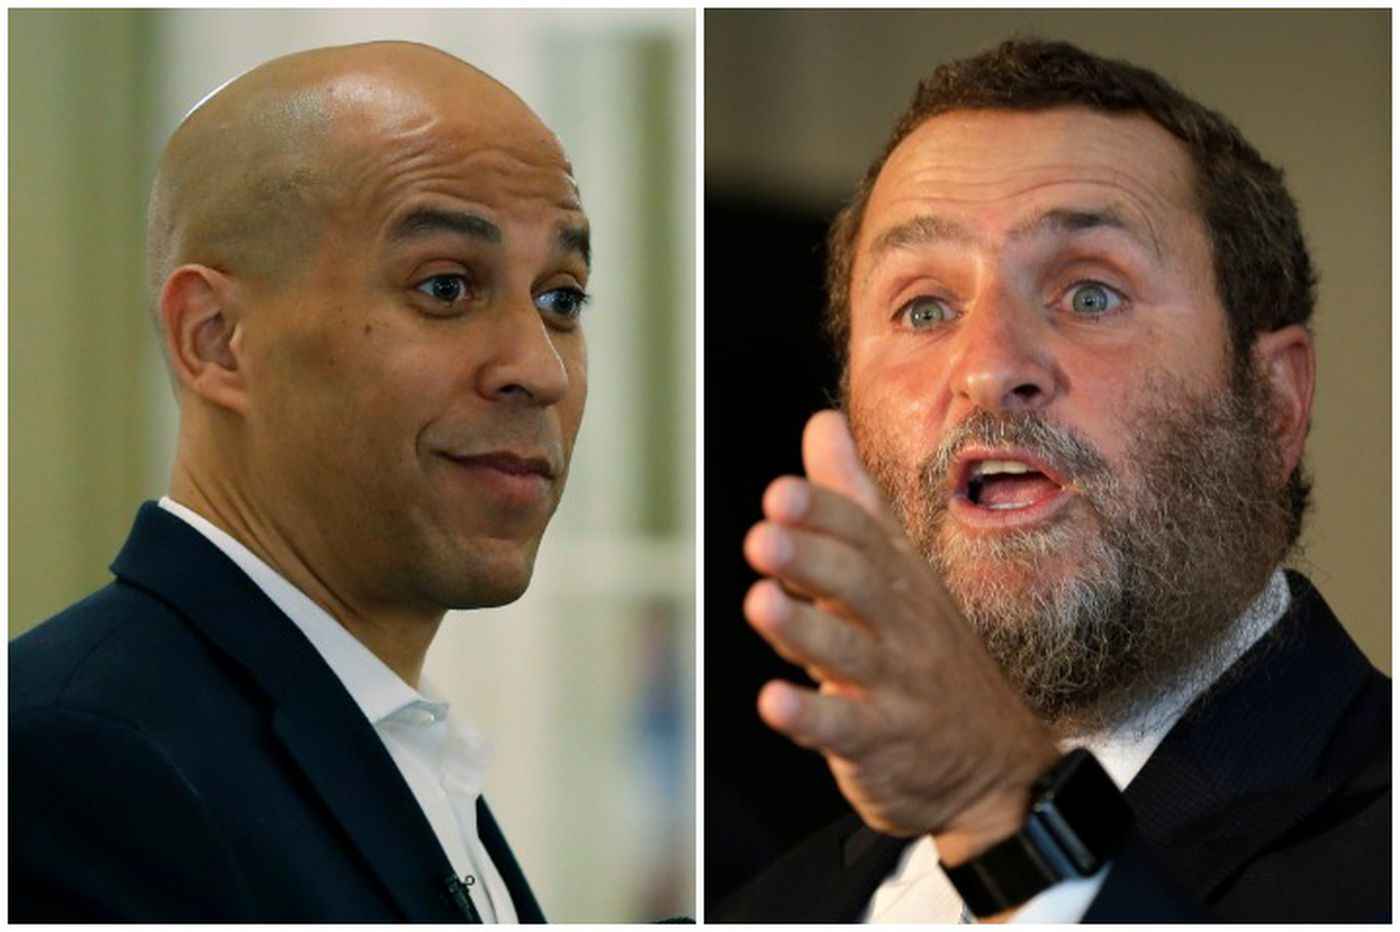 Cory Booker and an Orthodox rabbi were like brothers. Now they don't speak.